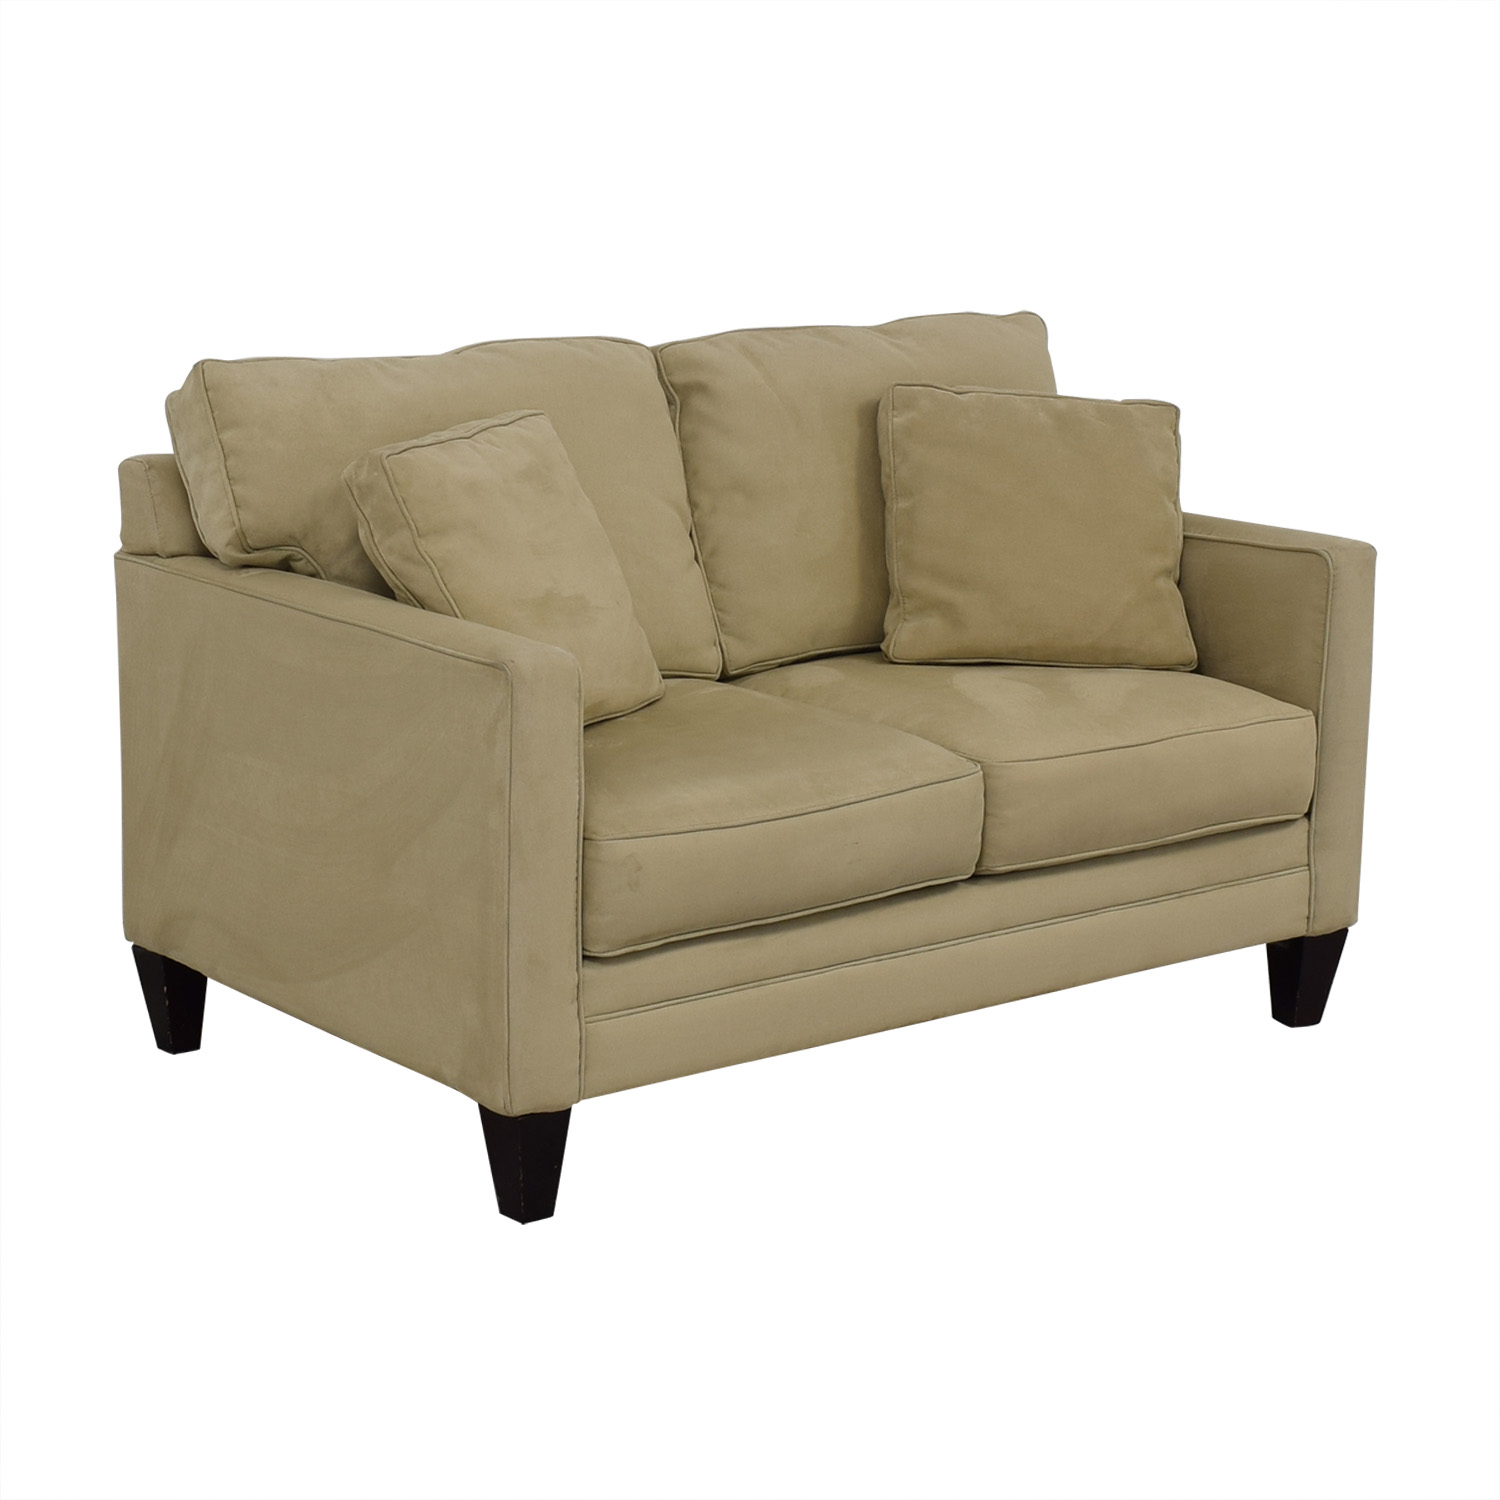 Bauhaus Furniture Bauhaus Furniture Suede Loveseat dimensions